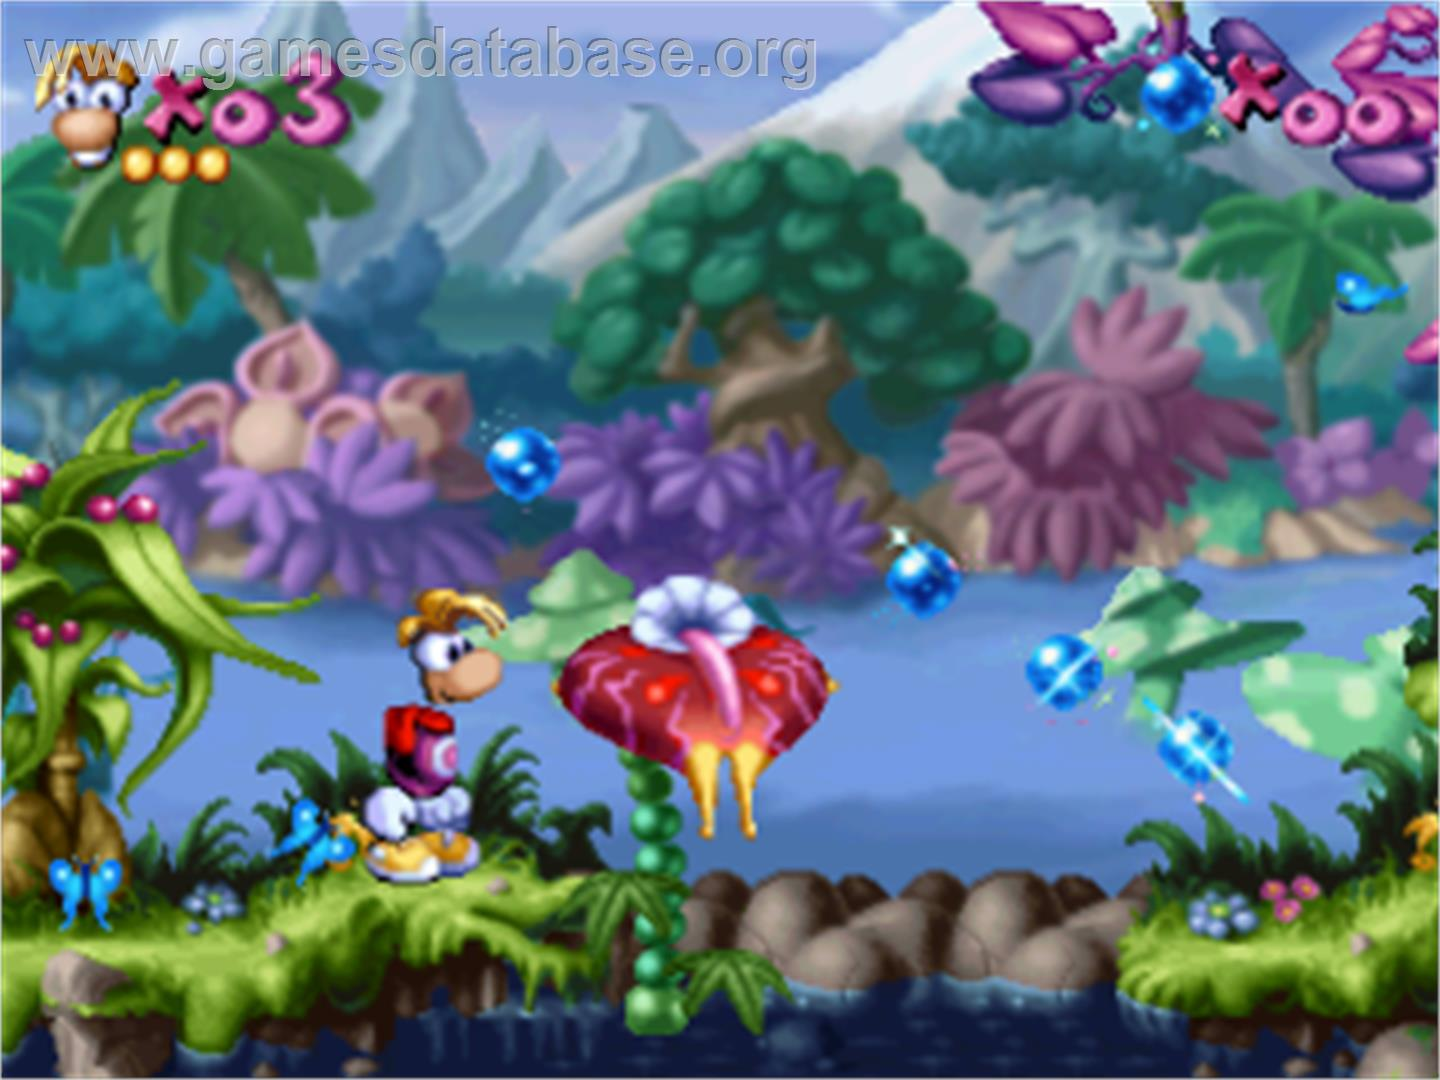 Rayman Rayman 2 The Great Escape Sony Playstation Artwork In Game